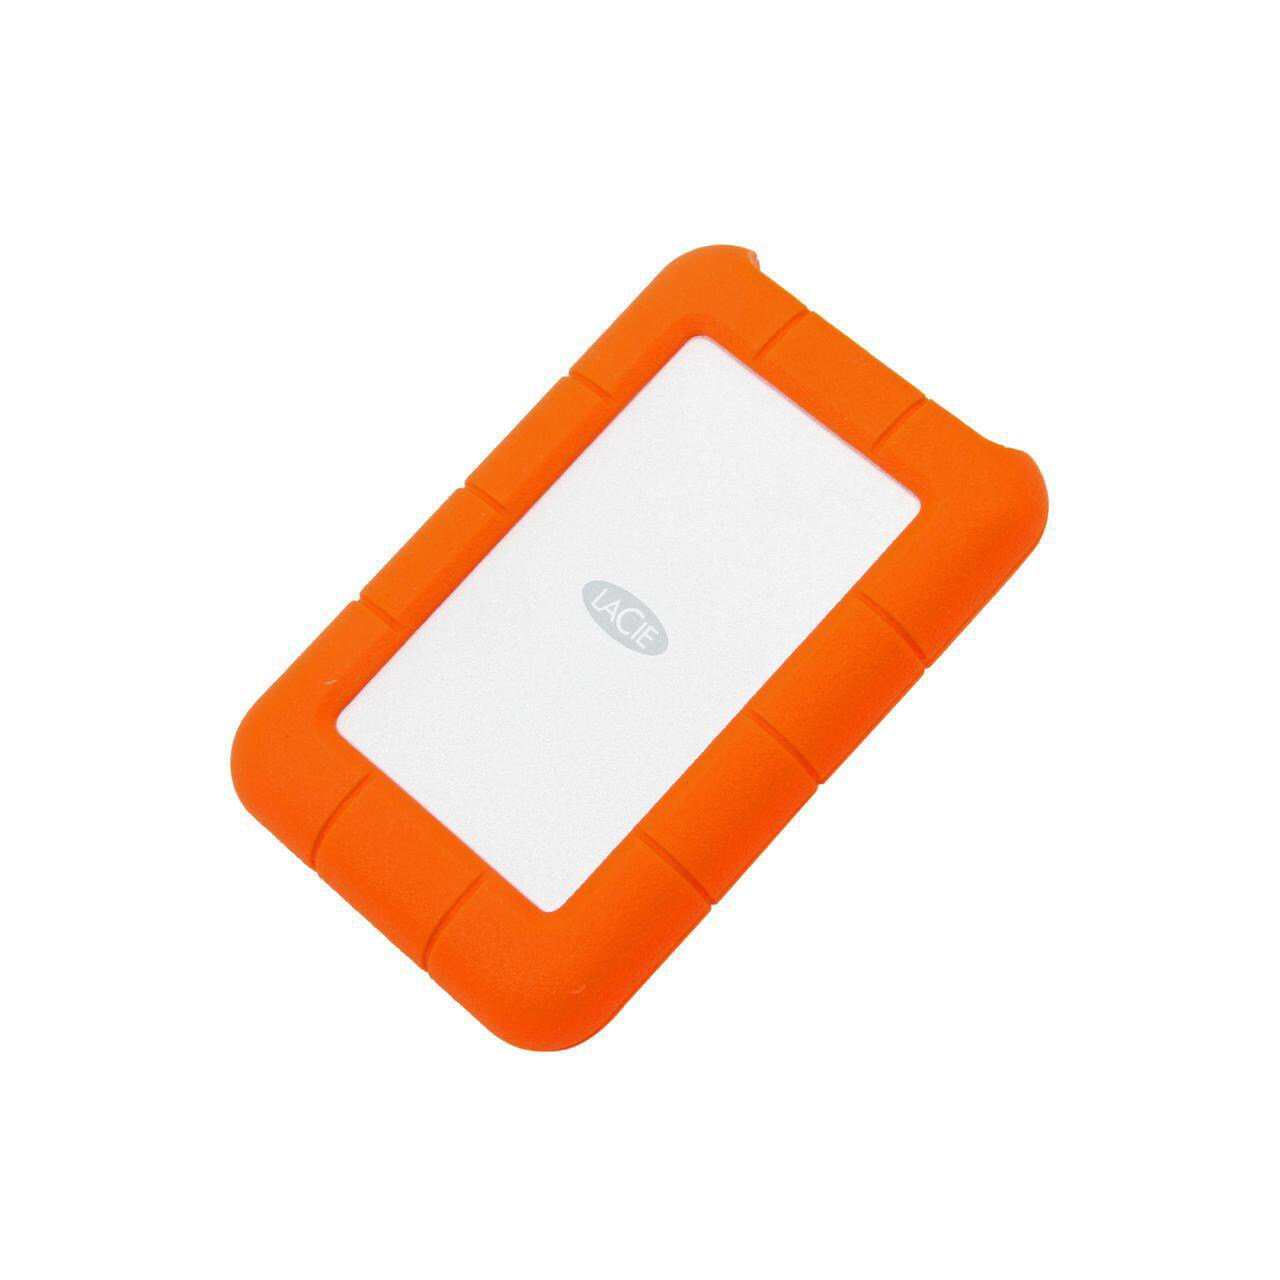 Lacie Rugged Mini with USB3.0 Connection, Shock Resistance, Mac Compatible (1TB / 2TB / 4TB)